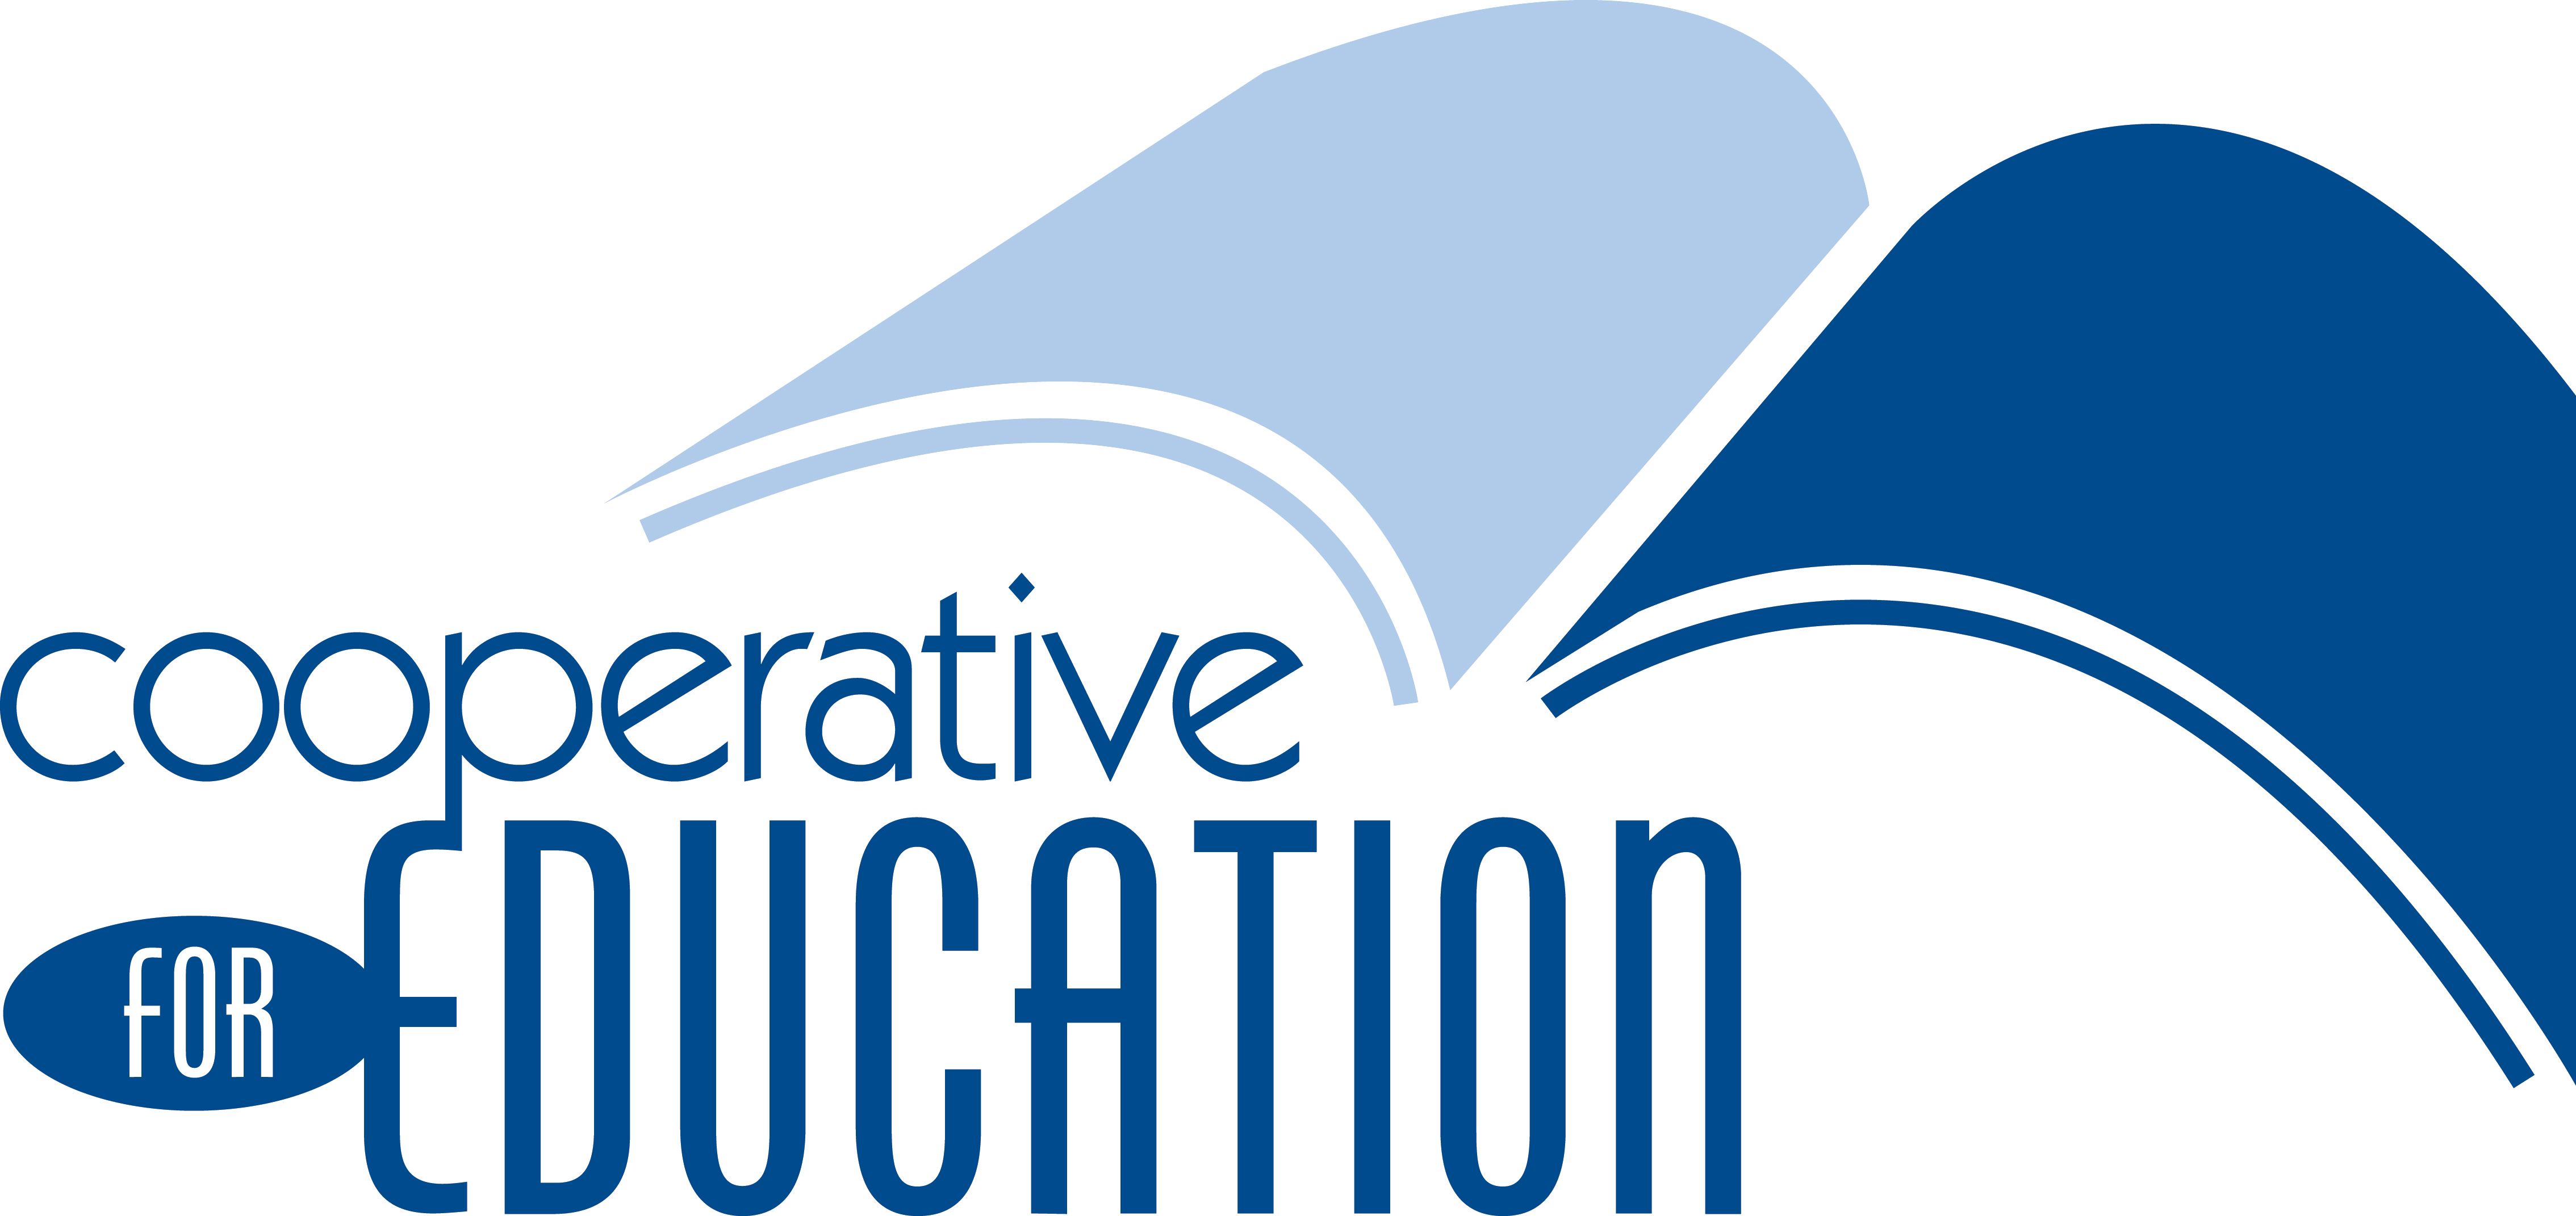 Cooperative for Education